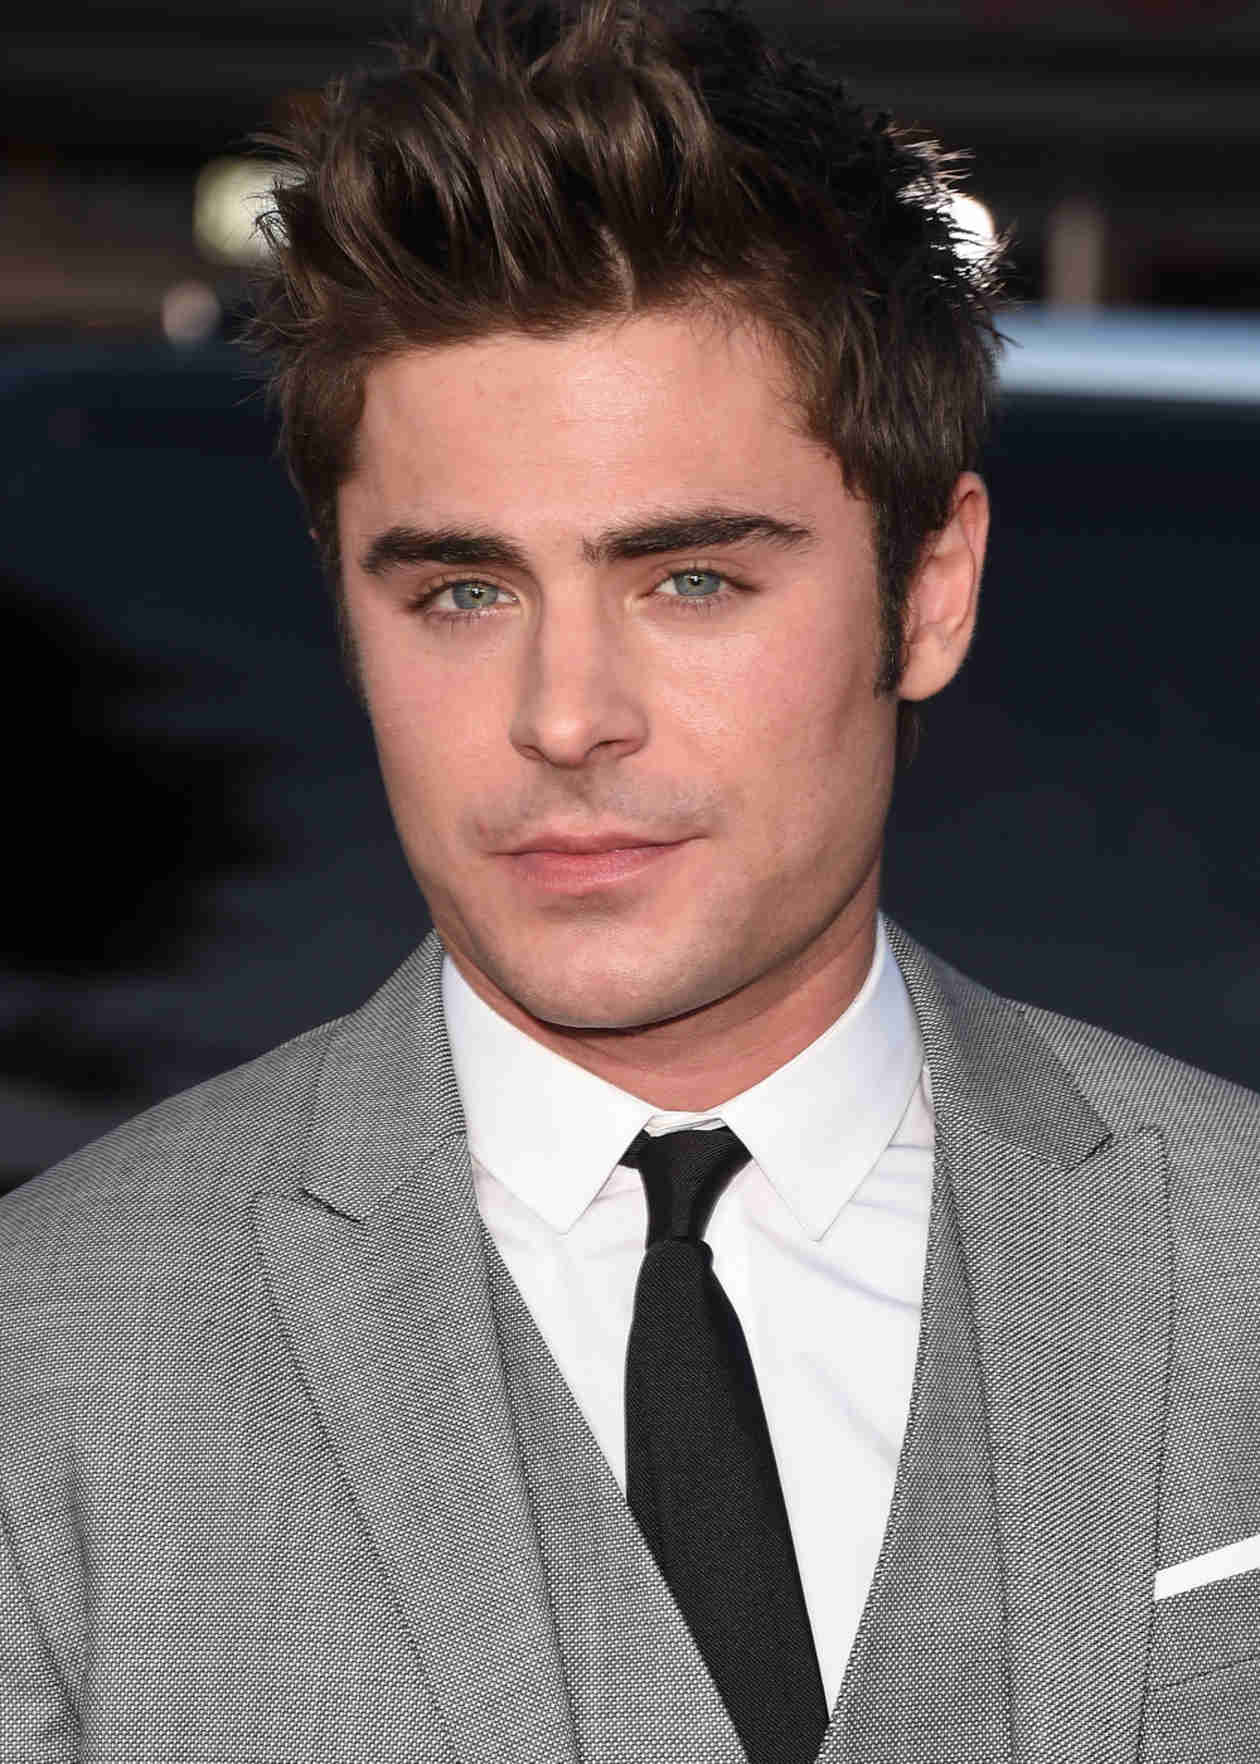 Zac Efron Spotted at Michelle Rodriguez's Home — Seems Like Things Are Heating Up! (VIDEO)